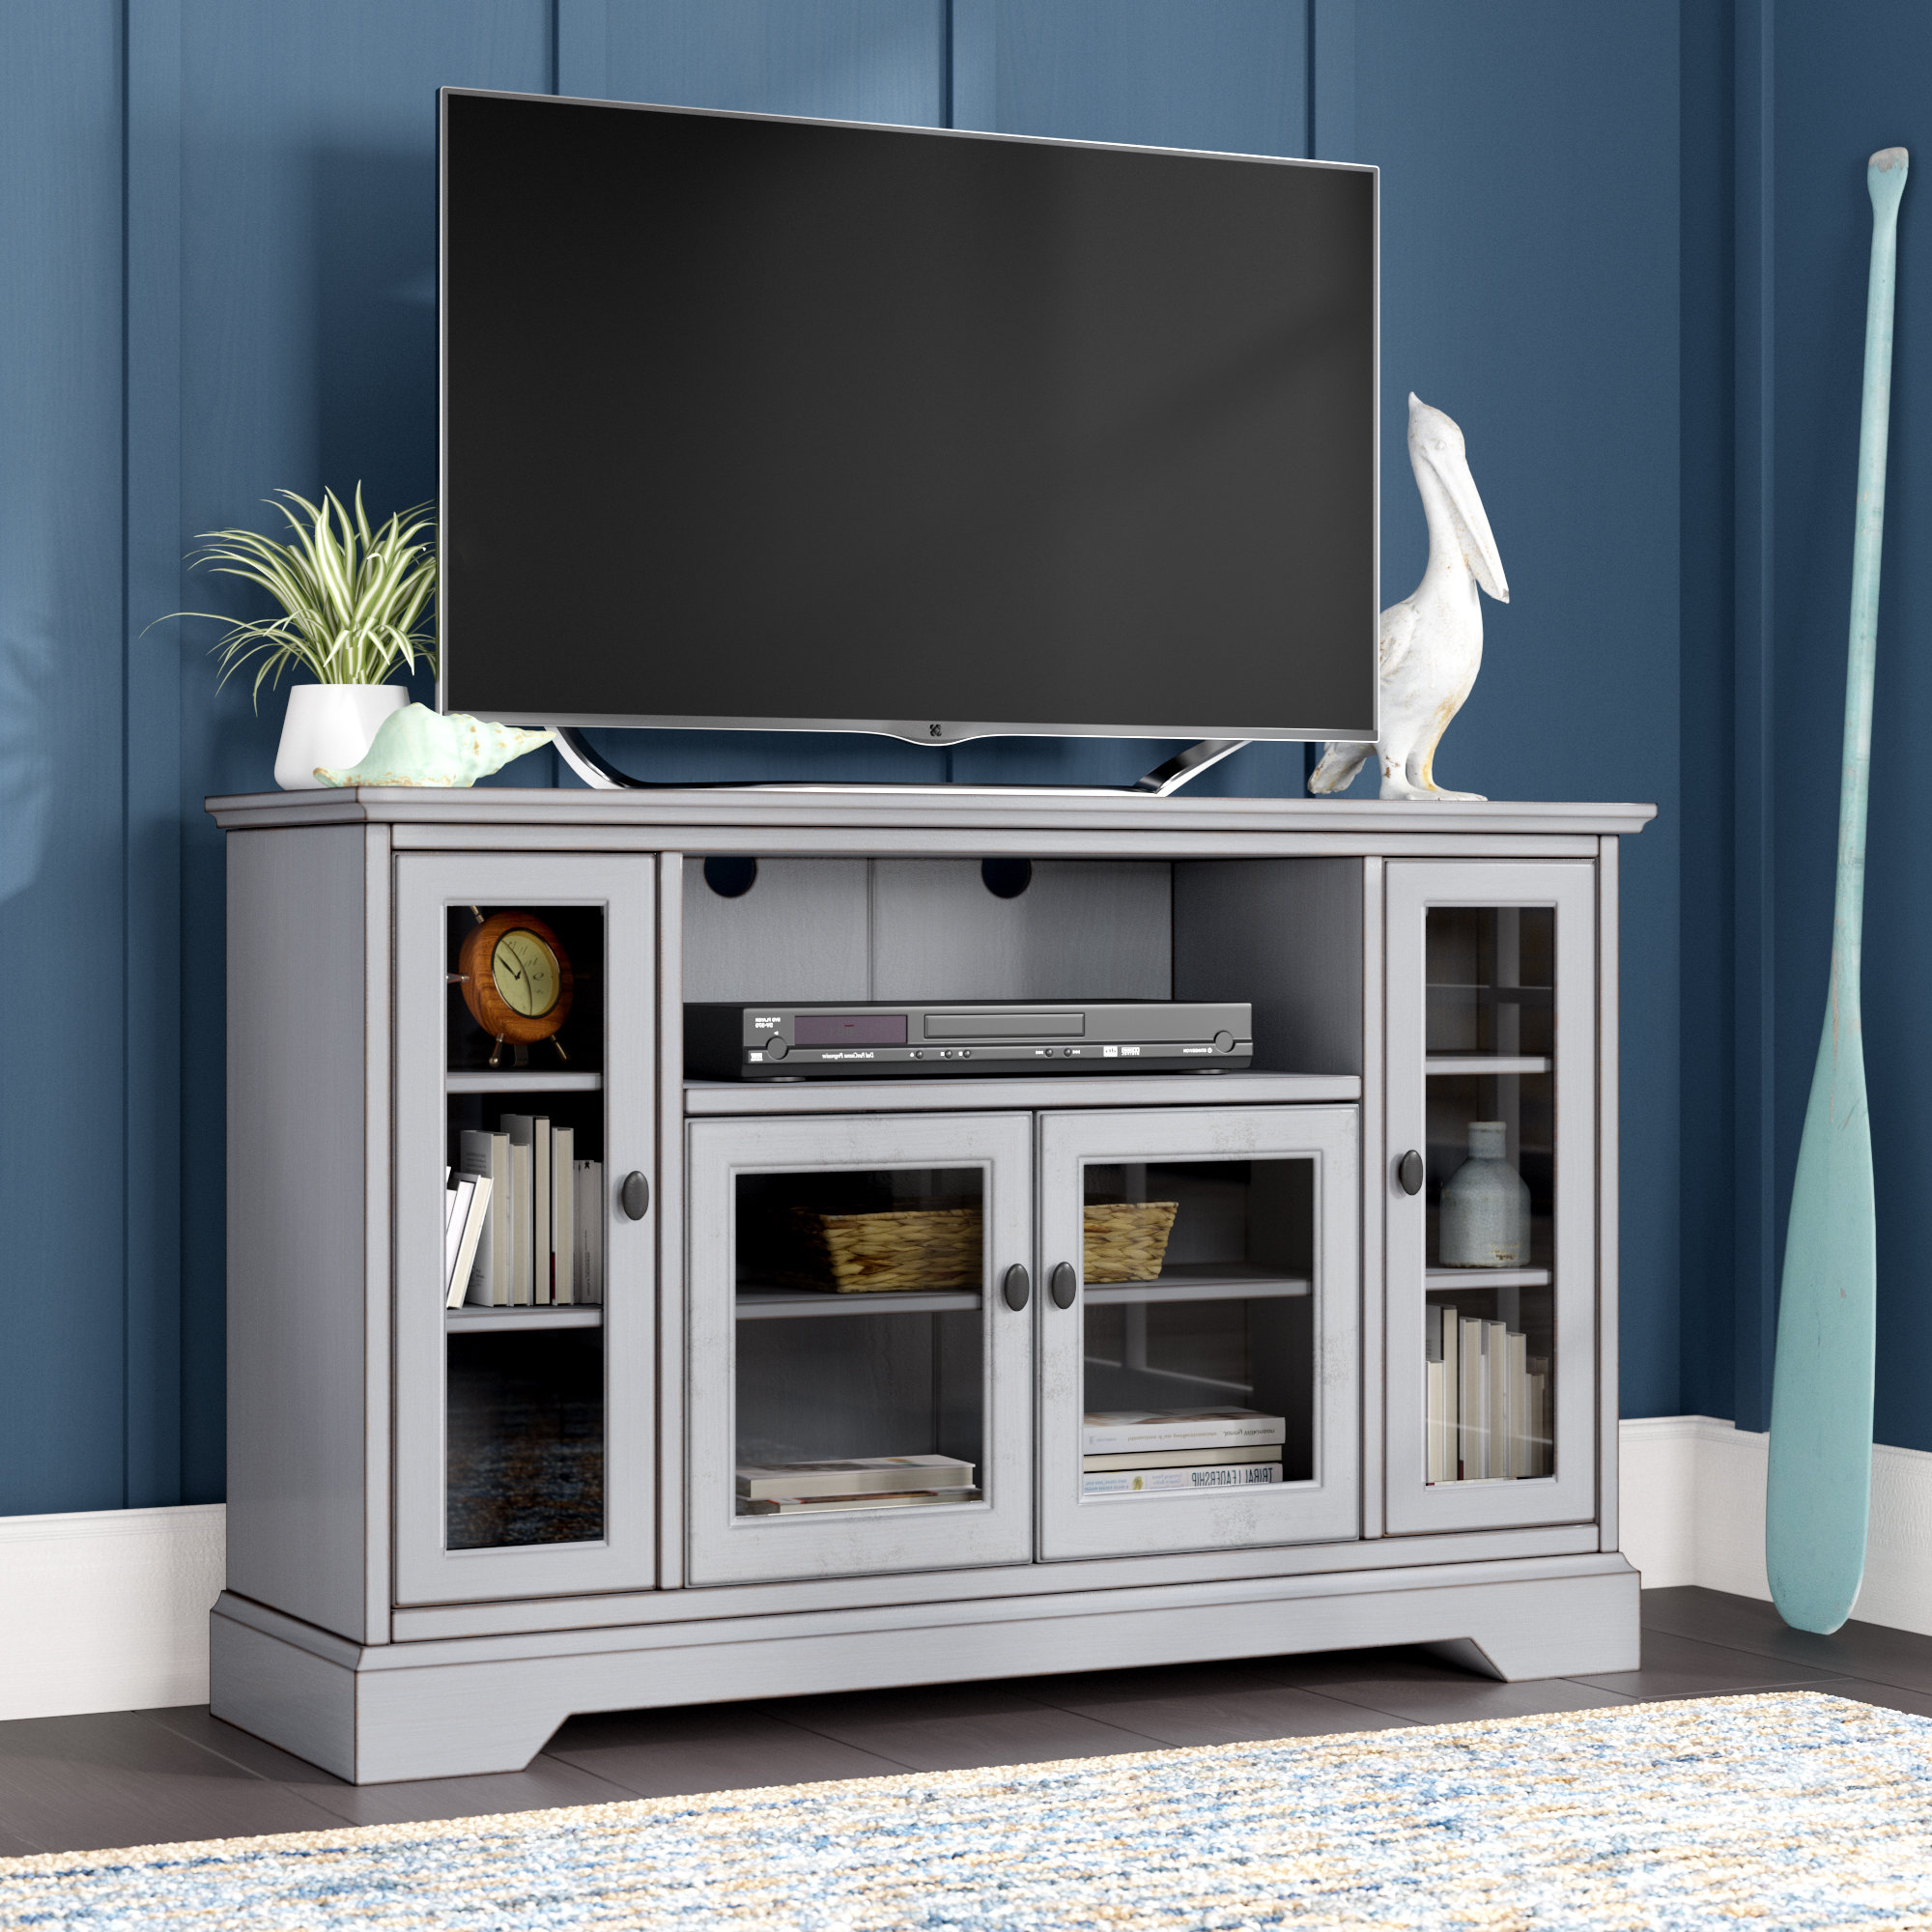 Tall Tv Stands You'll Love | Wayfair With Regard To Edwin Grey 64 Inch Tv Stands (View 17 of 20)